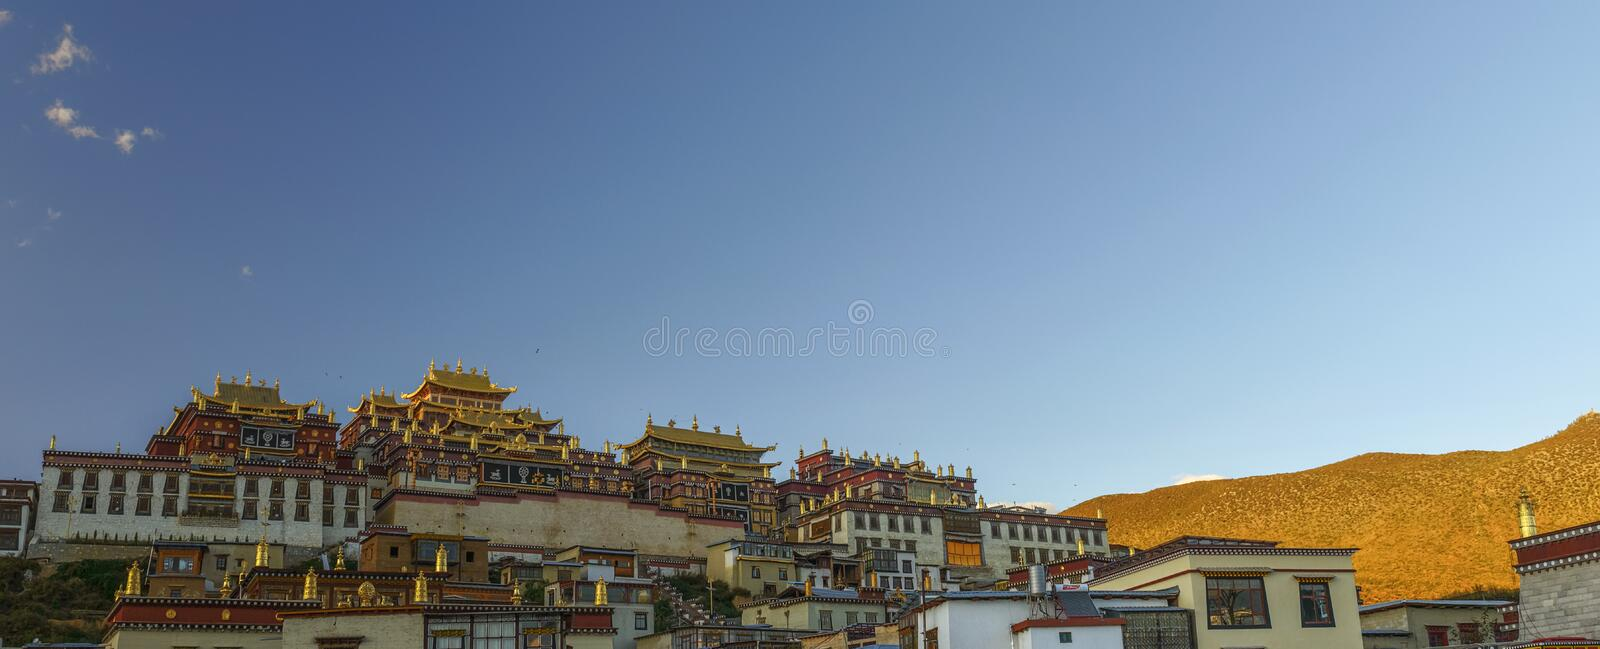 Tibetan temple at sunset. Tibetan temple landscape at songzhanlin temple, Shangri La, sunset time, with blue sky background royalty free stock photos